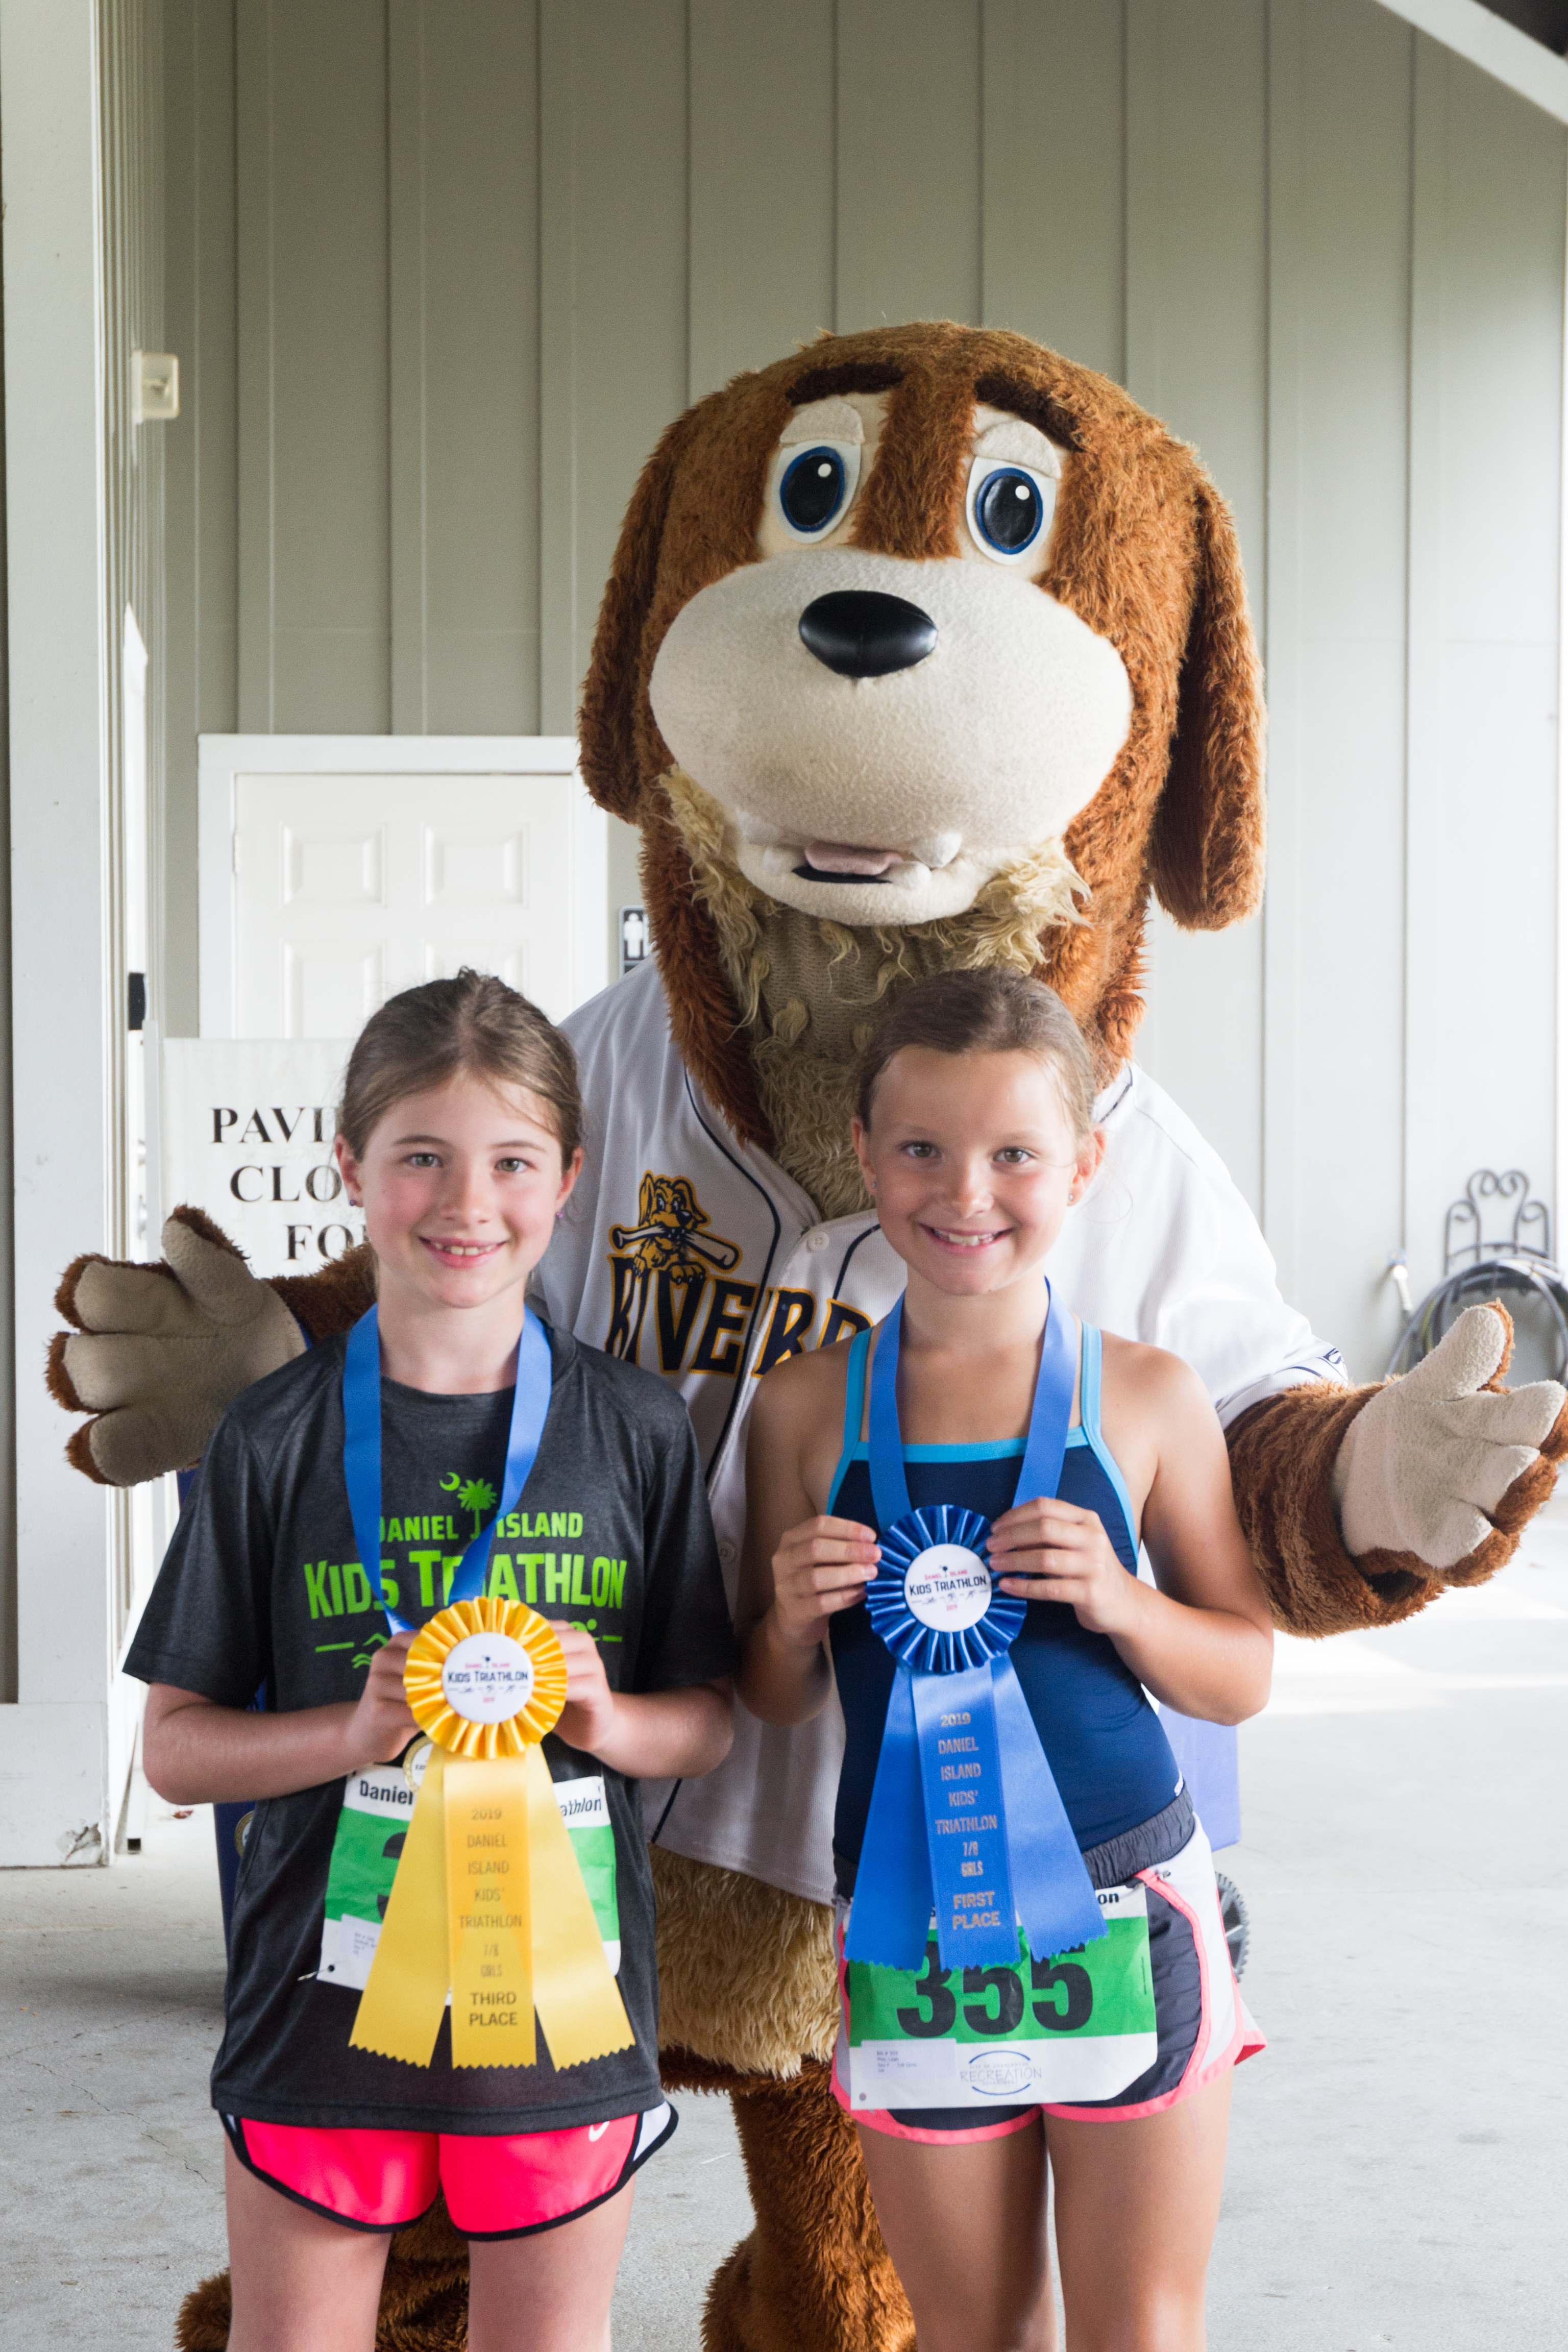 Winners in the 7-8 year-old girls' category (100 meter swim, 2.4 mile bike, ½ mile run): Lilah May (1st), Sarah Ligon (2nd – not pictured), and Bridgette DeWolf and Madelyn Moore (tied for 3rd - Moore not pictured).